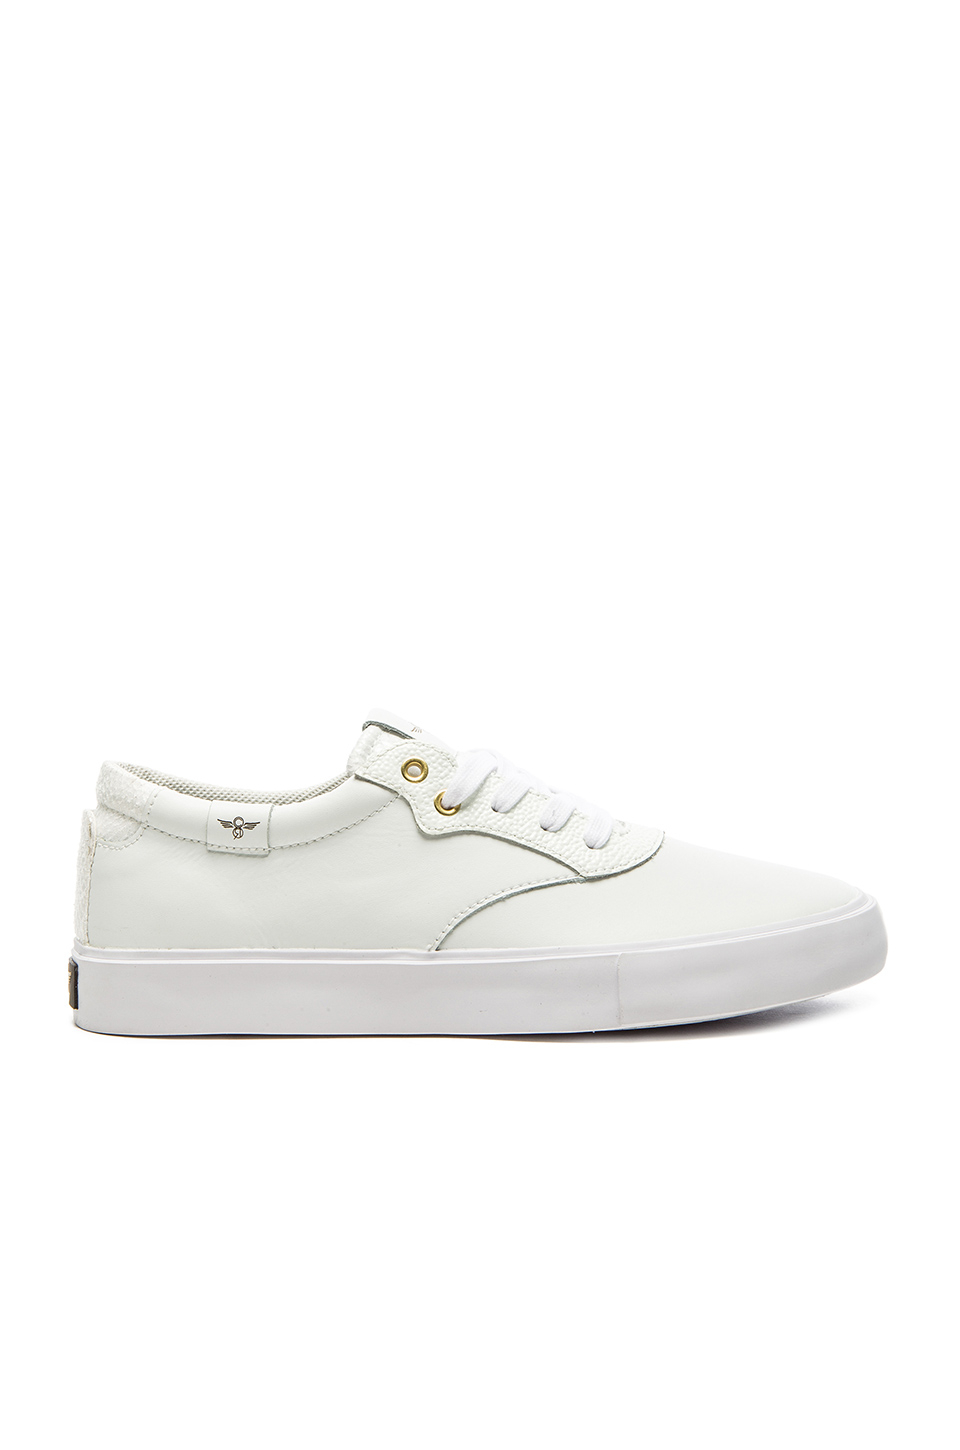 creative recreation prio sneakers in white for lyst